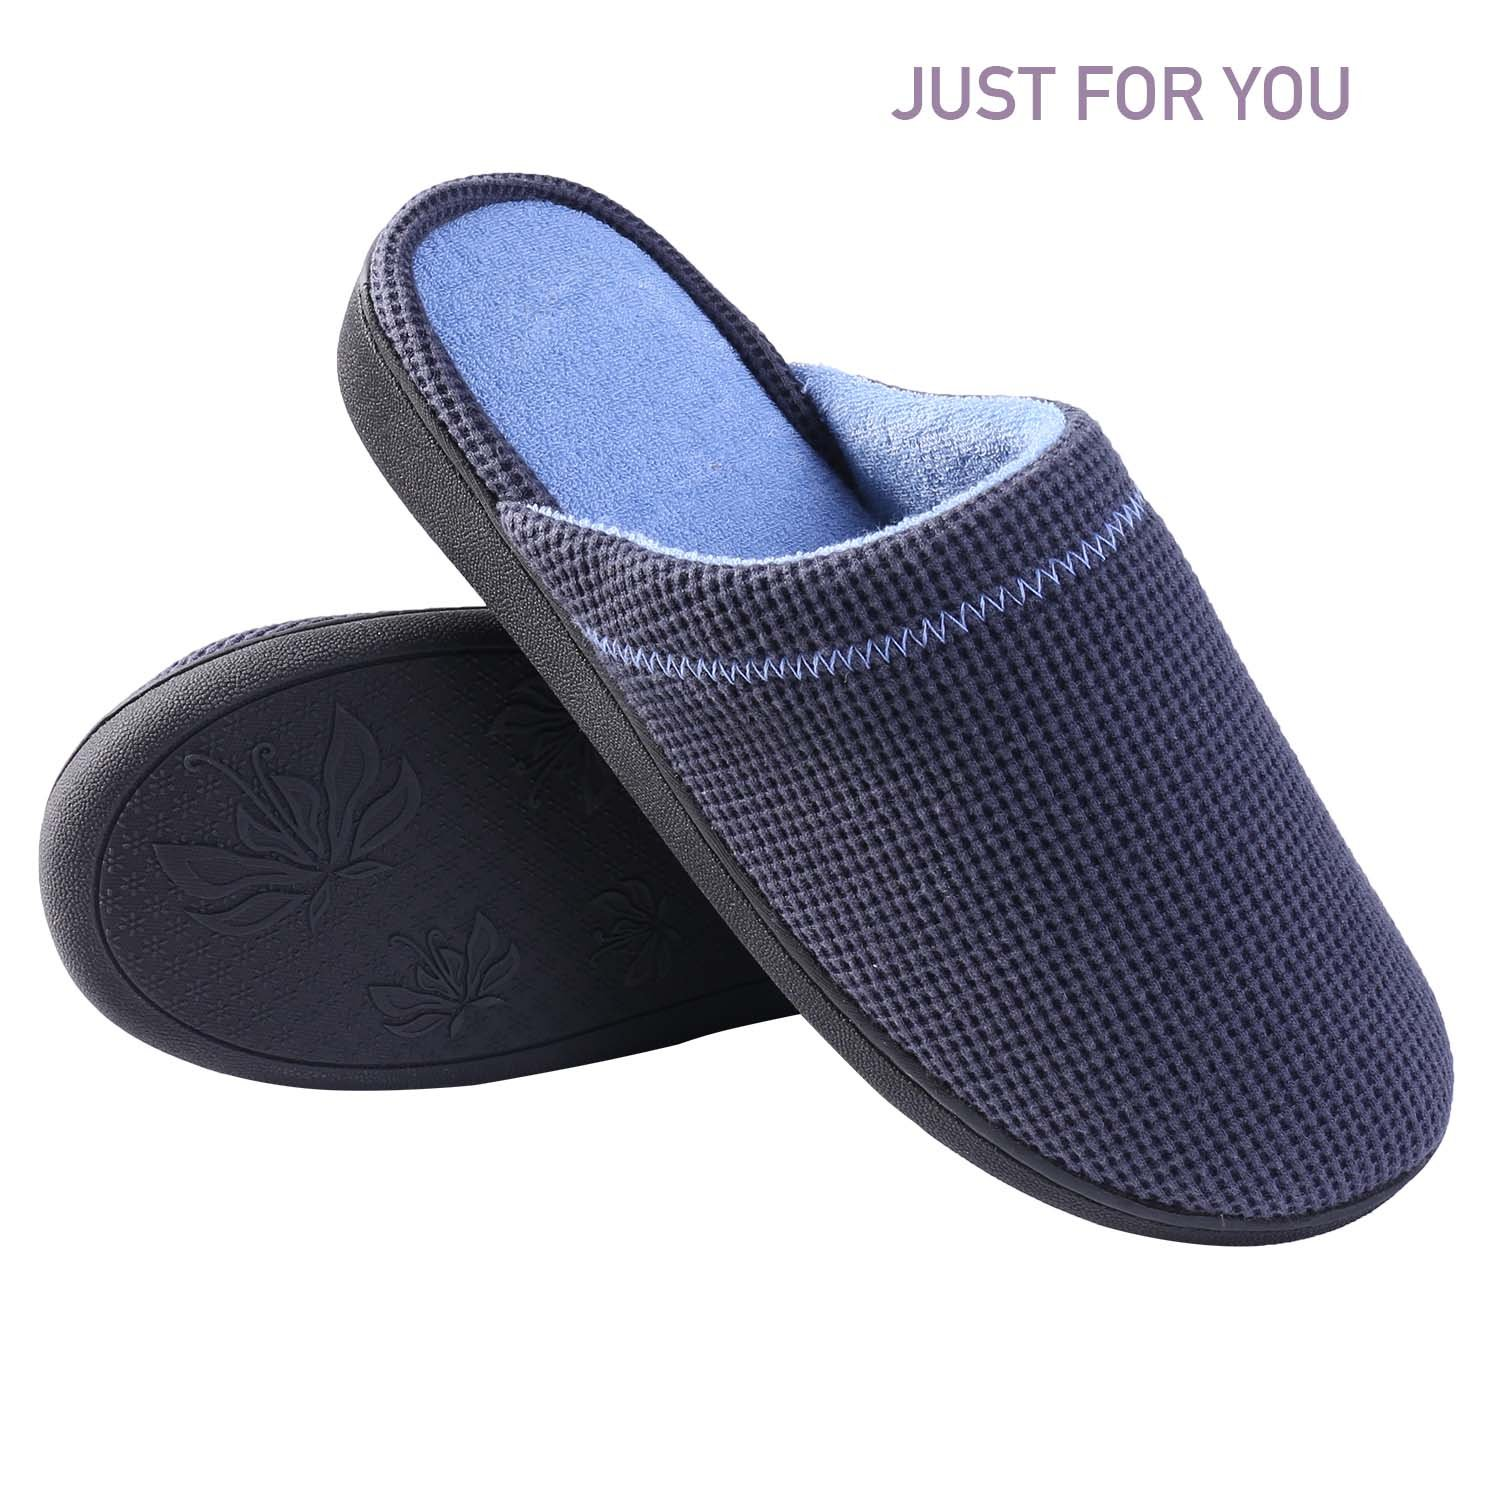 BESIDE STAR Womens Mens House Slippers, Indoor Slippers, Winter Warm Slippers, Comfort Plush Cotton Slippers(US 7-7.5/Asia 40-41 Navy)